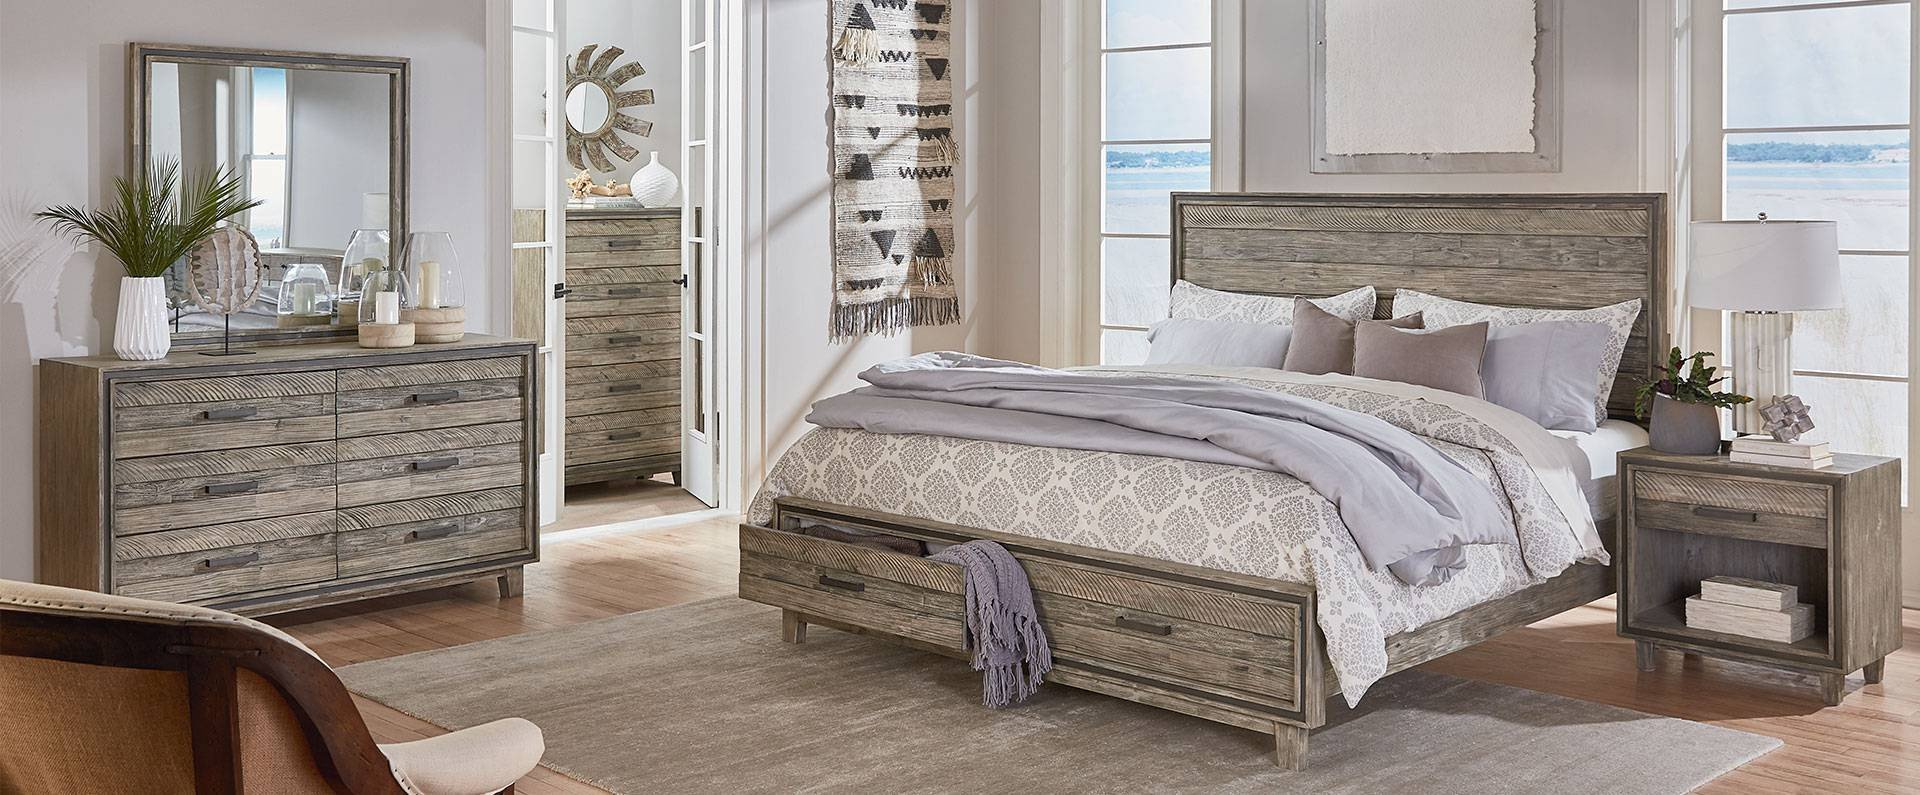 Rooms to Go Bedroom Furniture Sale Awesome Home Trends & Design